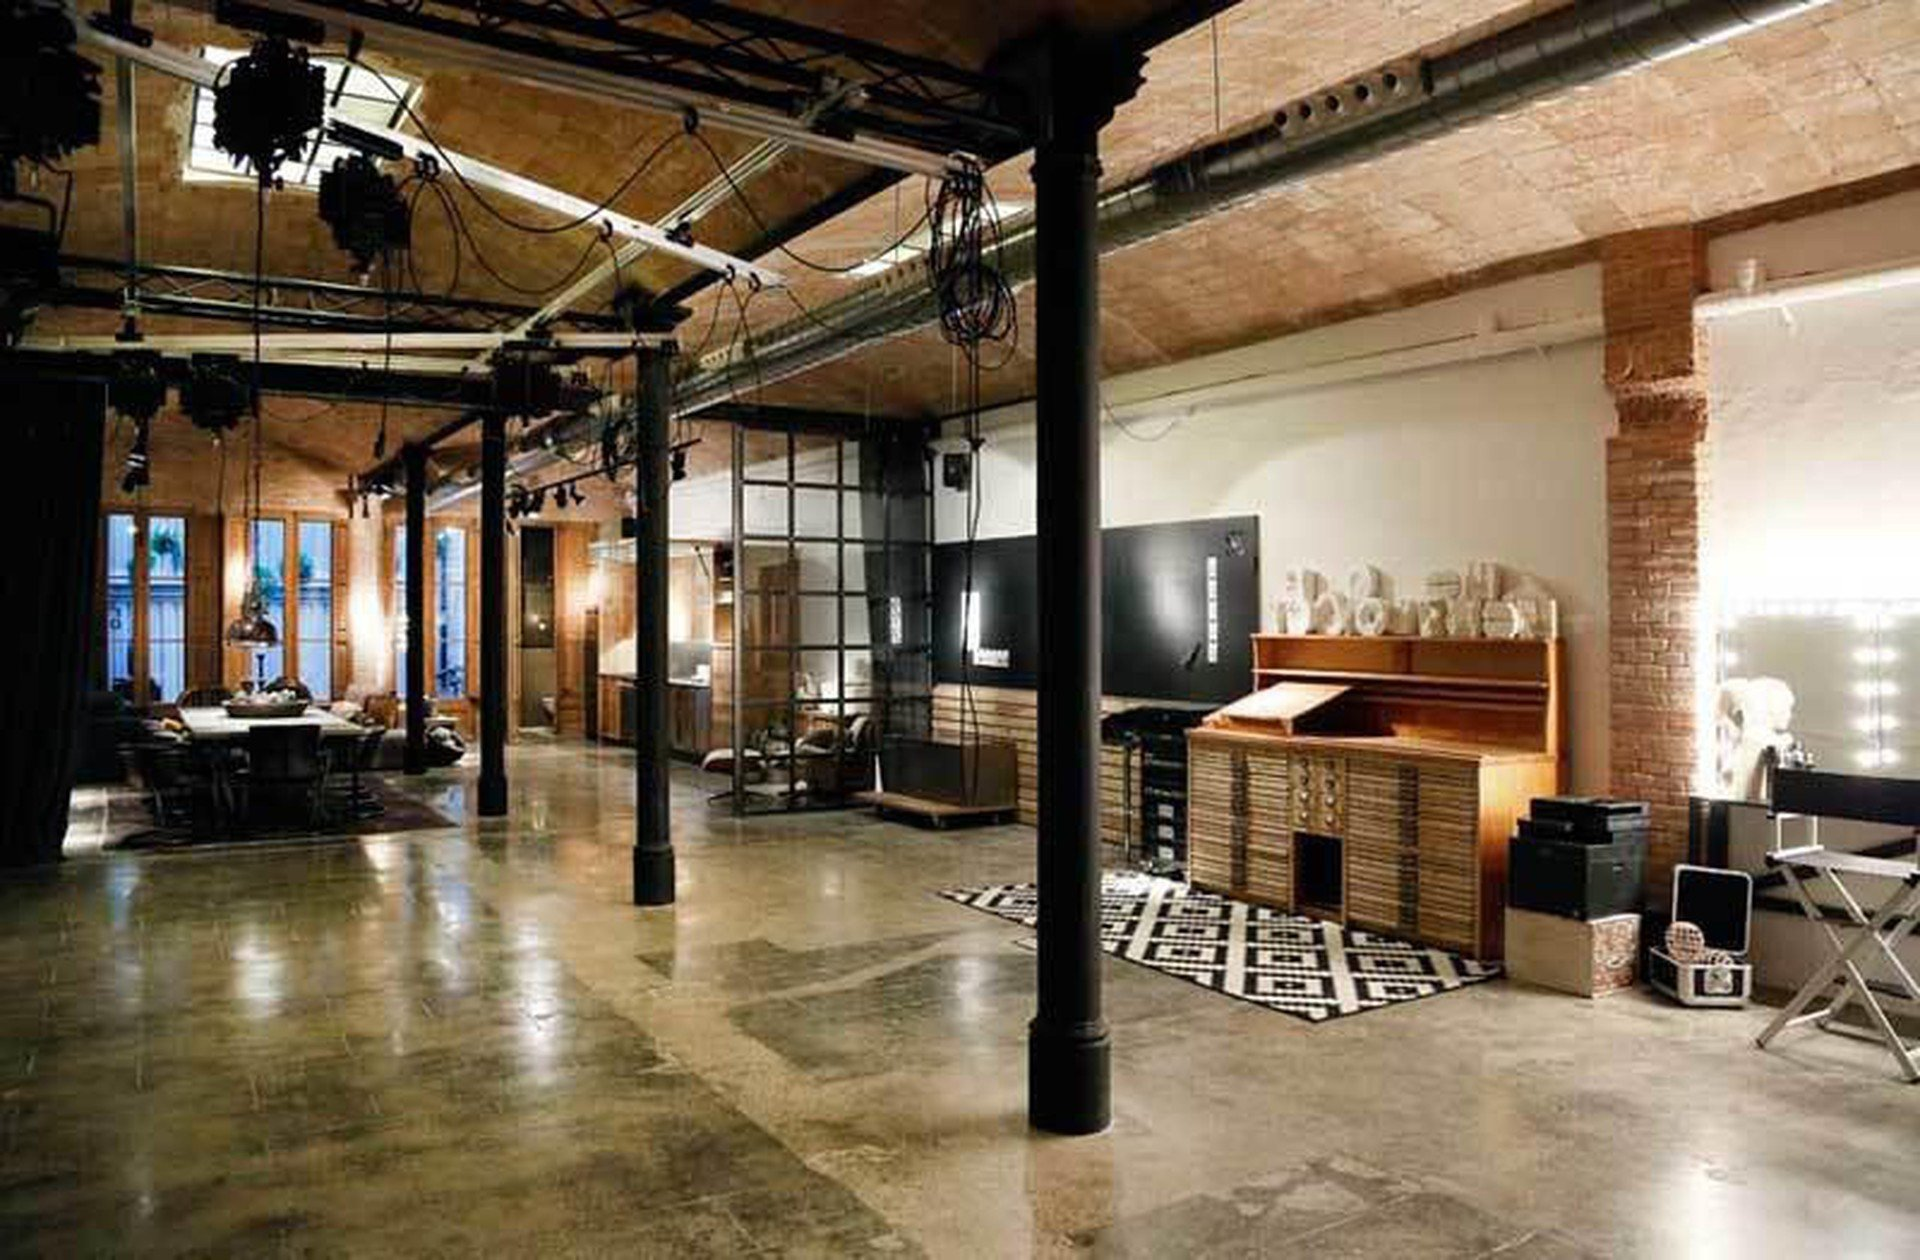 Barcelona workshop spaces Unusual The baSEment image 1